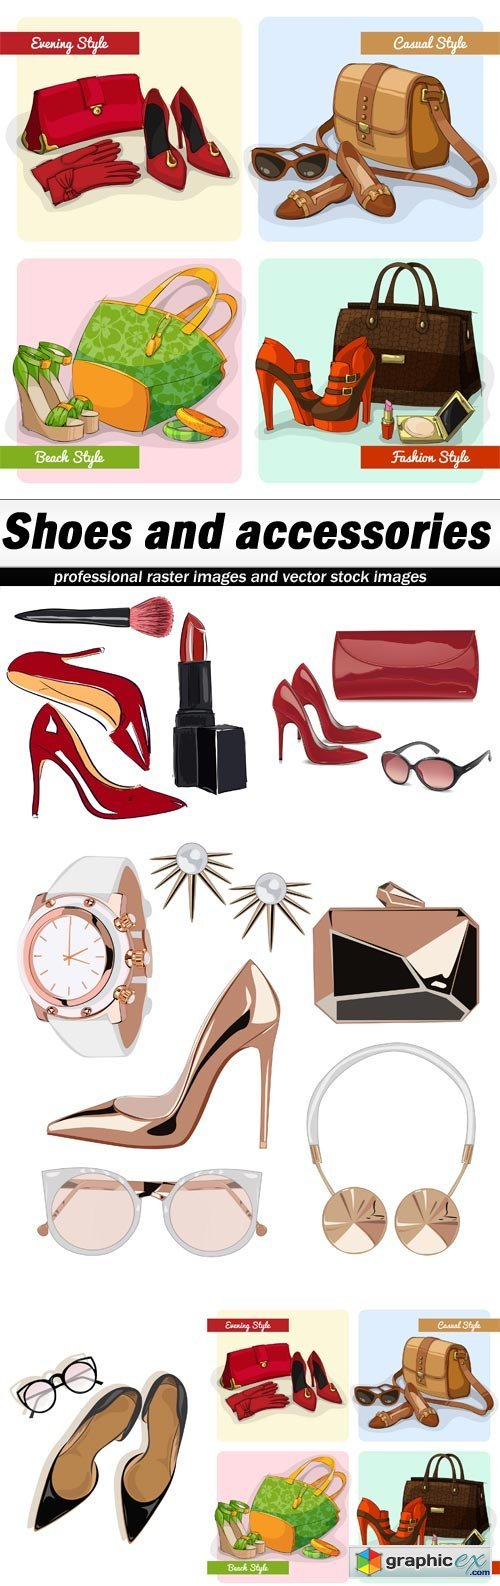 Shoes and accessories - 5 UHQ JPEG